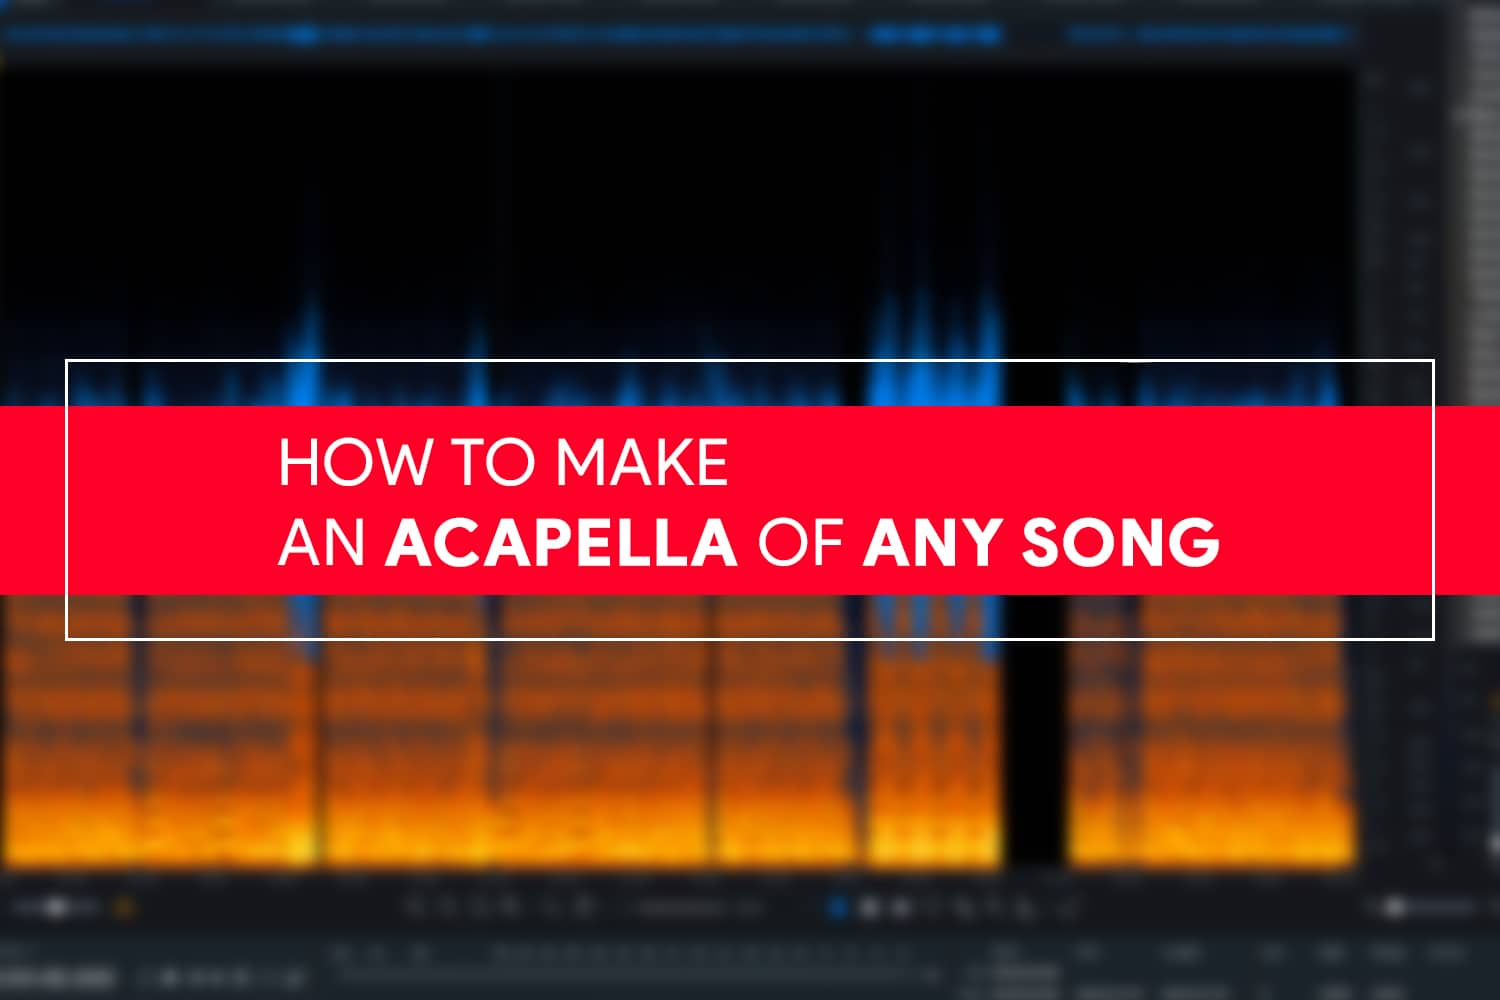 How to make an acapella of any song